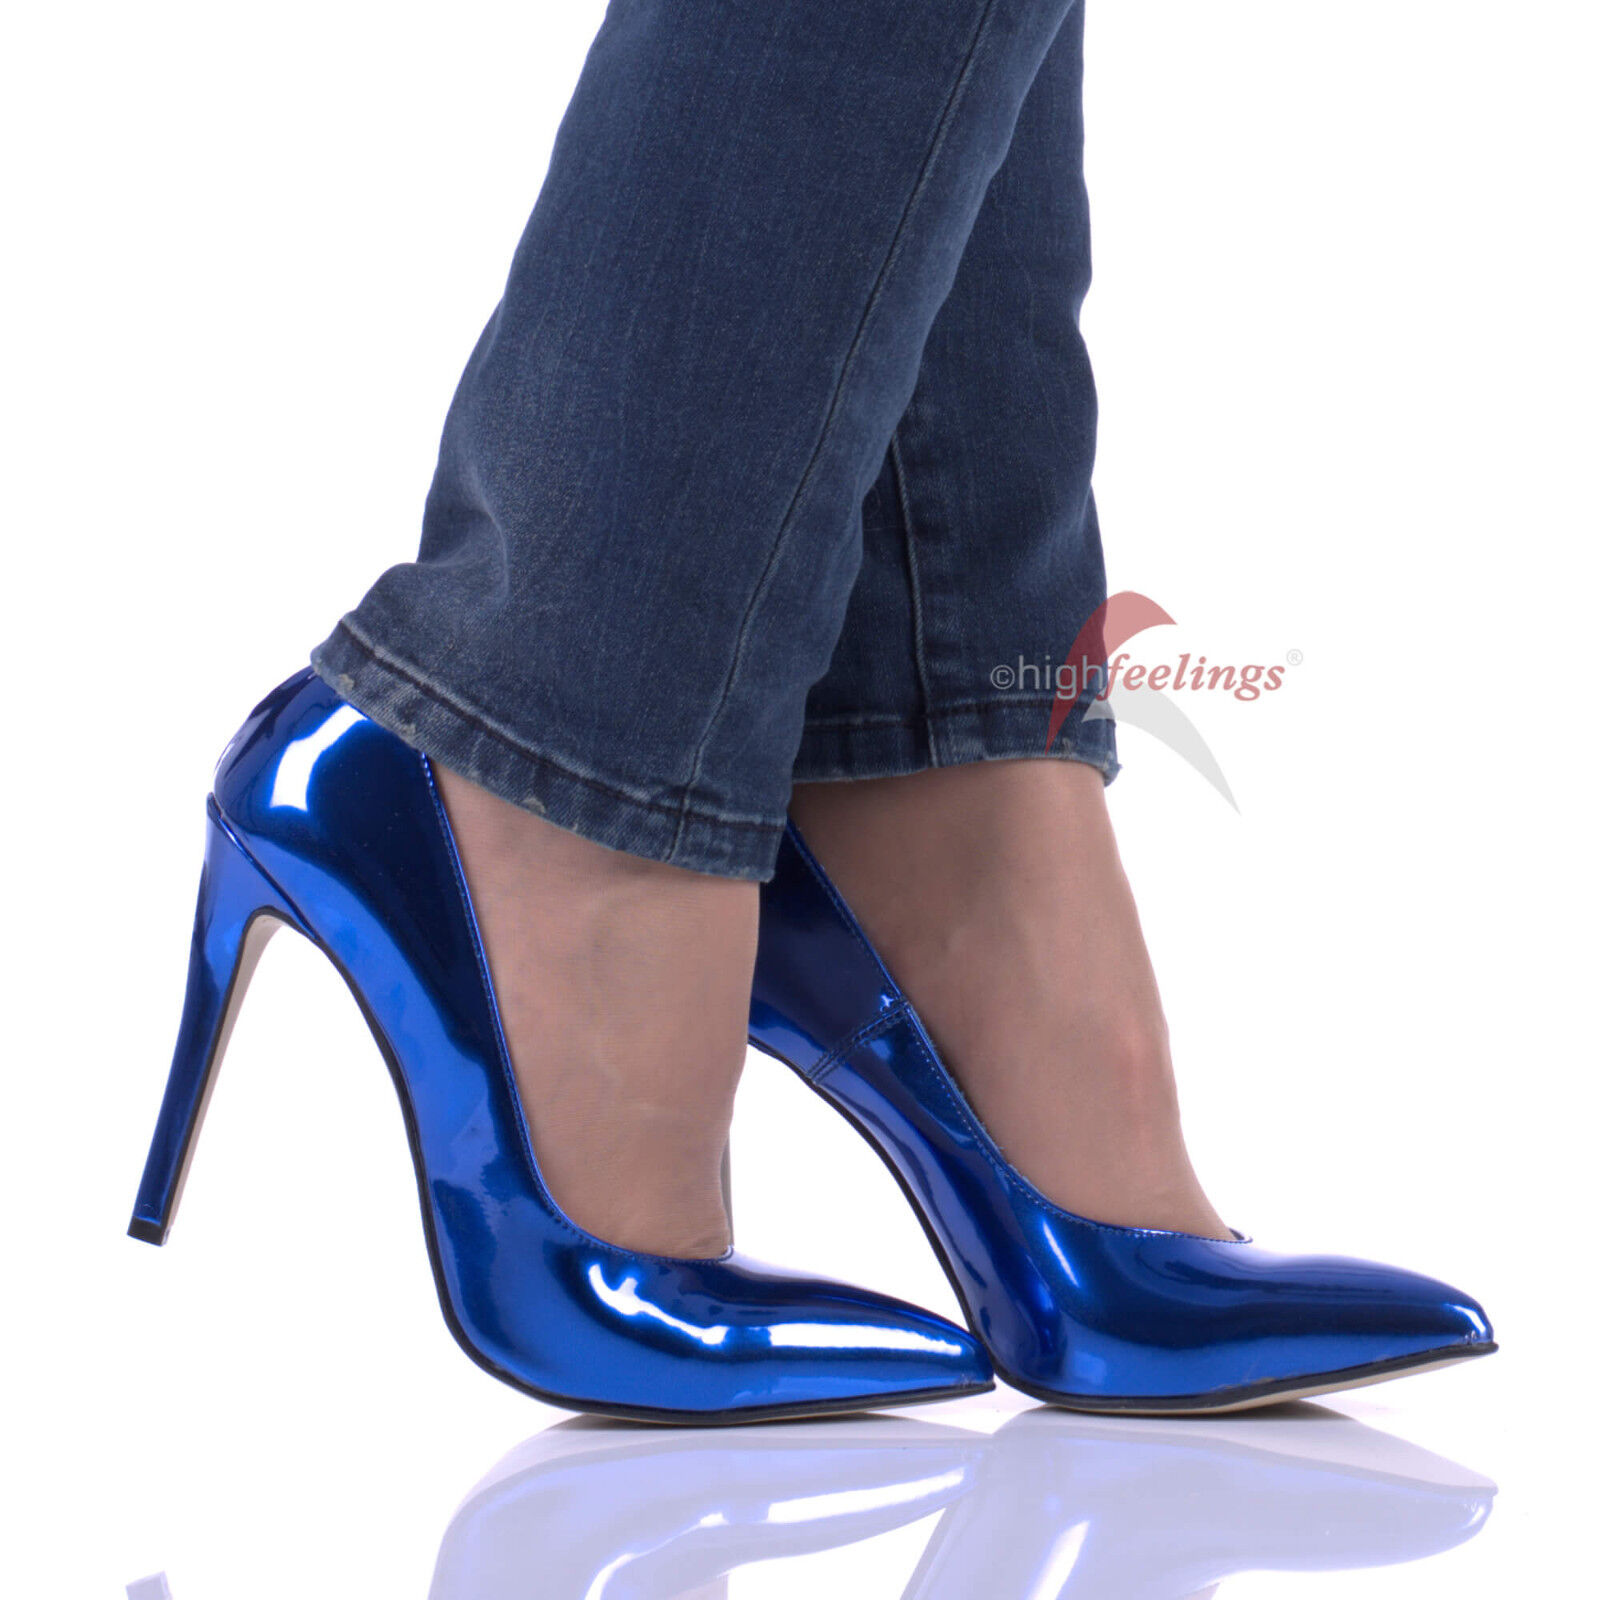 High Heels Pumps Blau Metallic Lackleder 10 - 12 cm Absatz Größe EUR 36 - 47